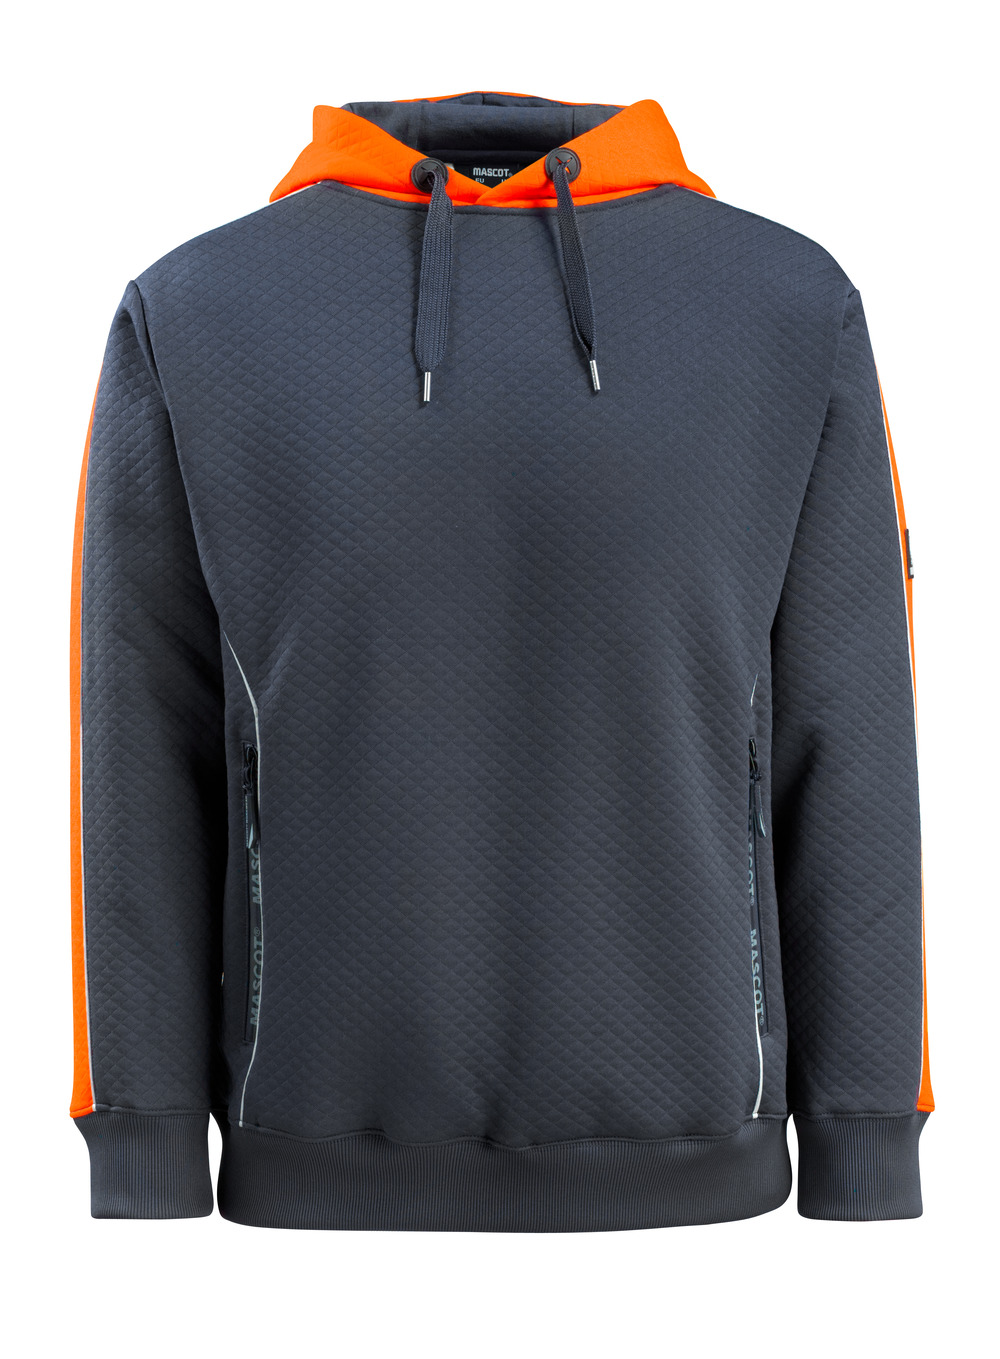 50124-932-01014 Hoodie - dark navy/hi-vis orange